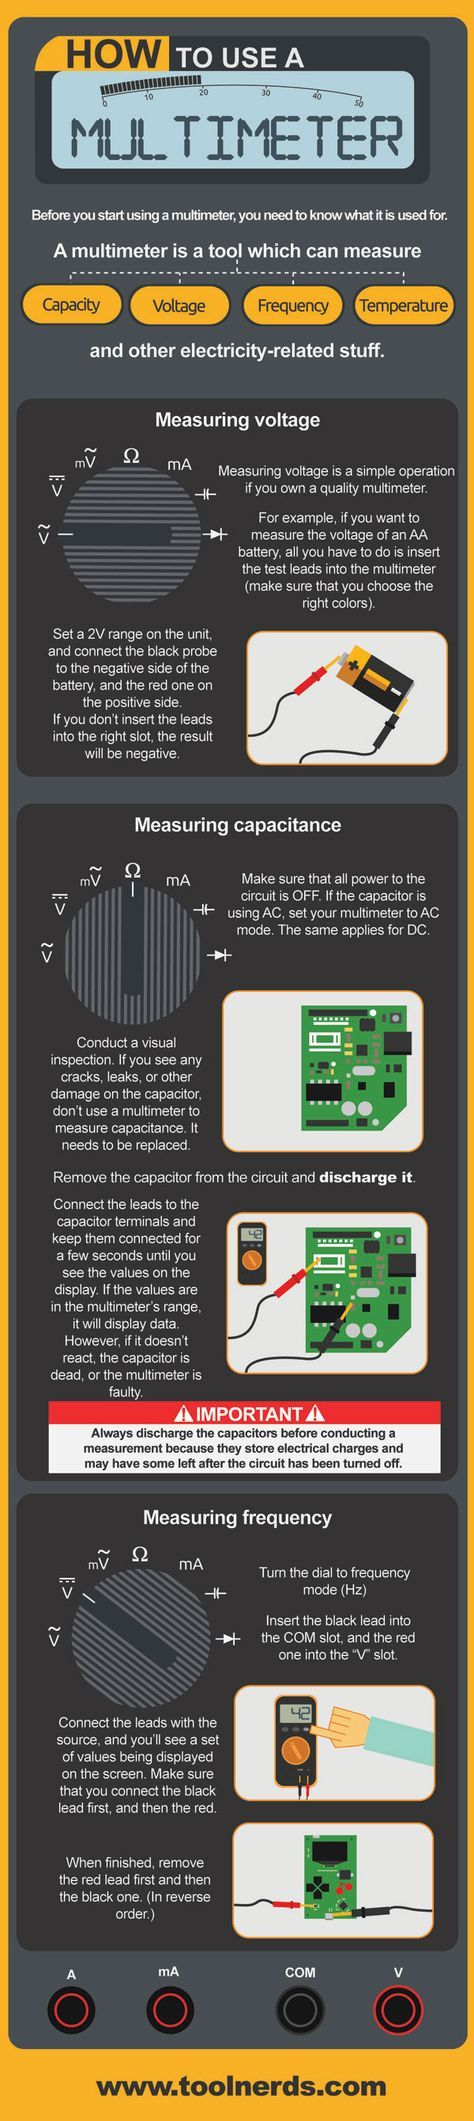 9 Best Electrico Images On Pinterest Tools Computers And Circuit Diagram Puertas Logicas Homemade Pic Programmer Schematic How To Use A Multimeter